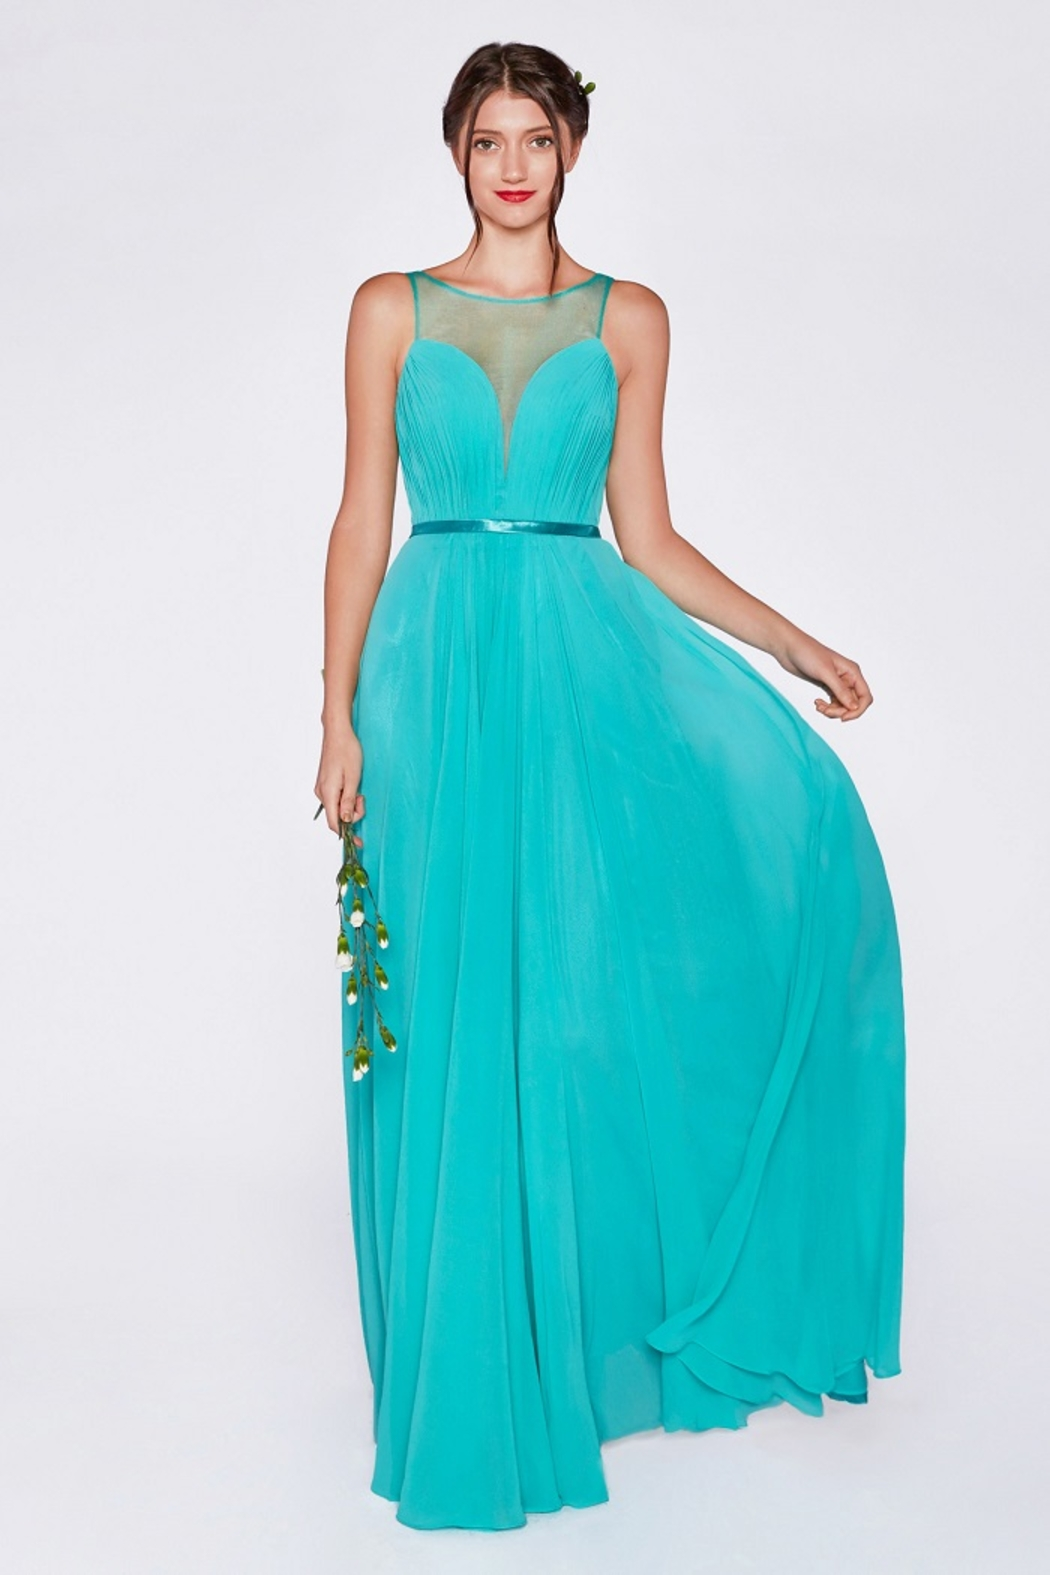 Cinderella Divine Mint Illusion V-Neck Long Formal Dress - Main Image